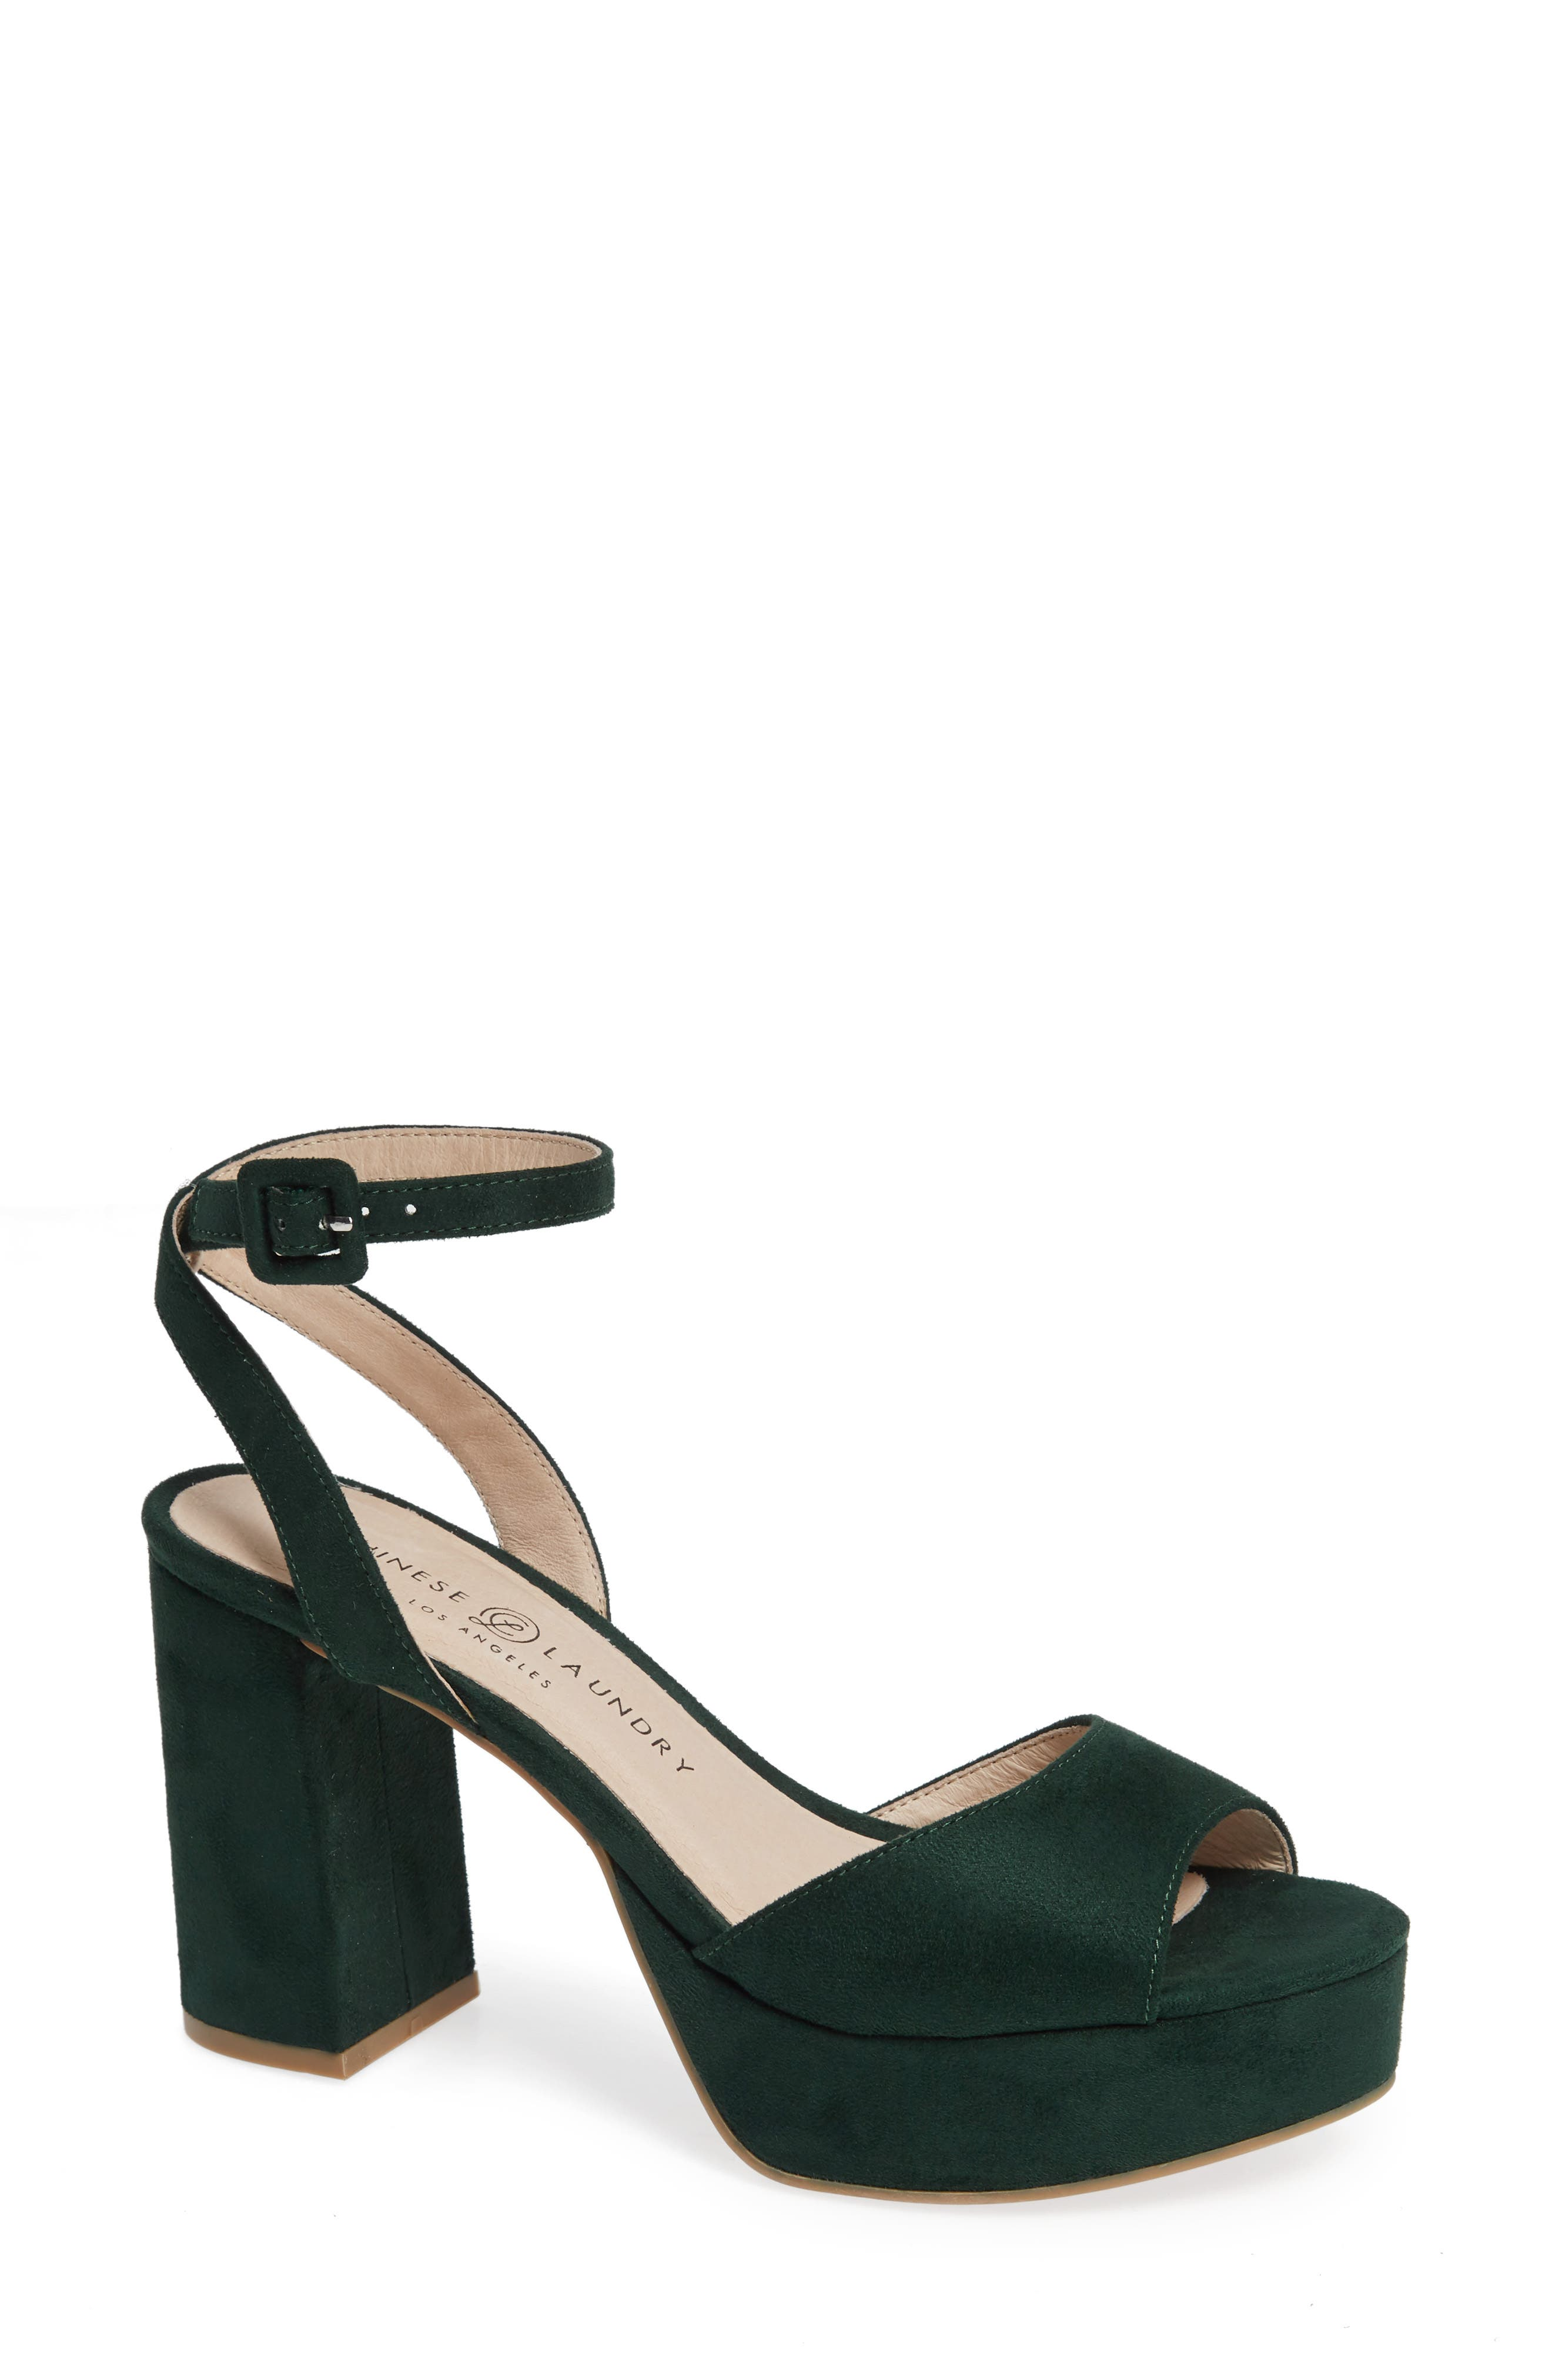 CHINESE LAUNDRY, Theresa Platform Sandal, Main thumbnail 1, color, FOREST GREEN SUEDE